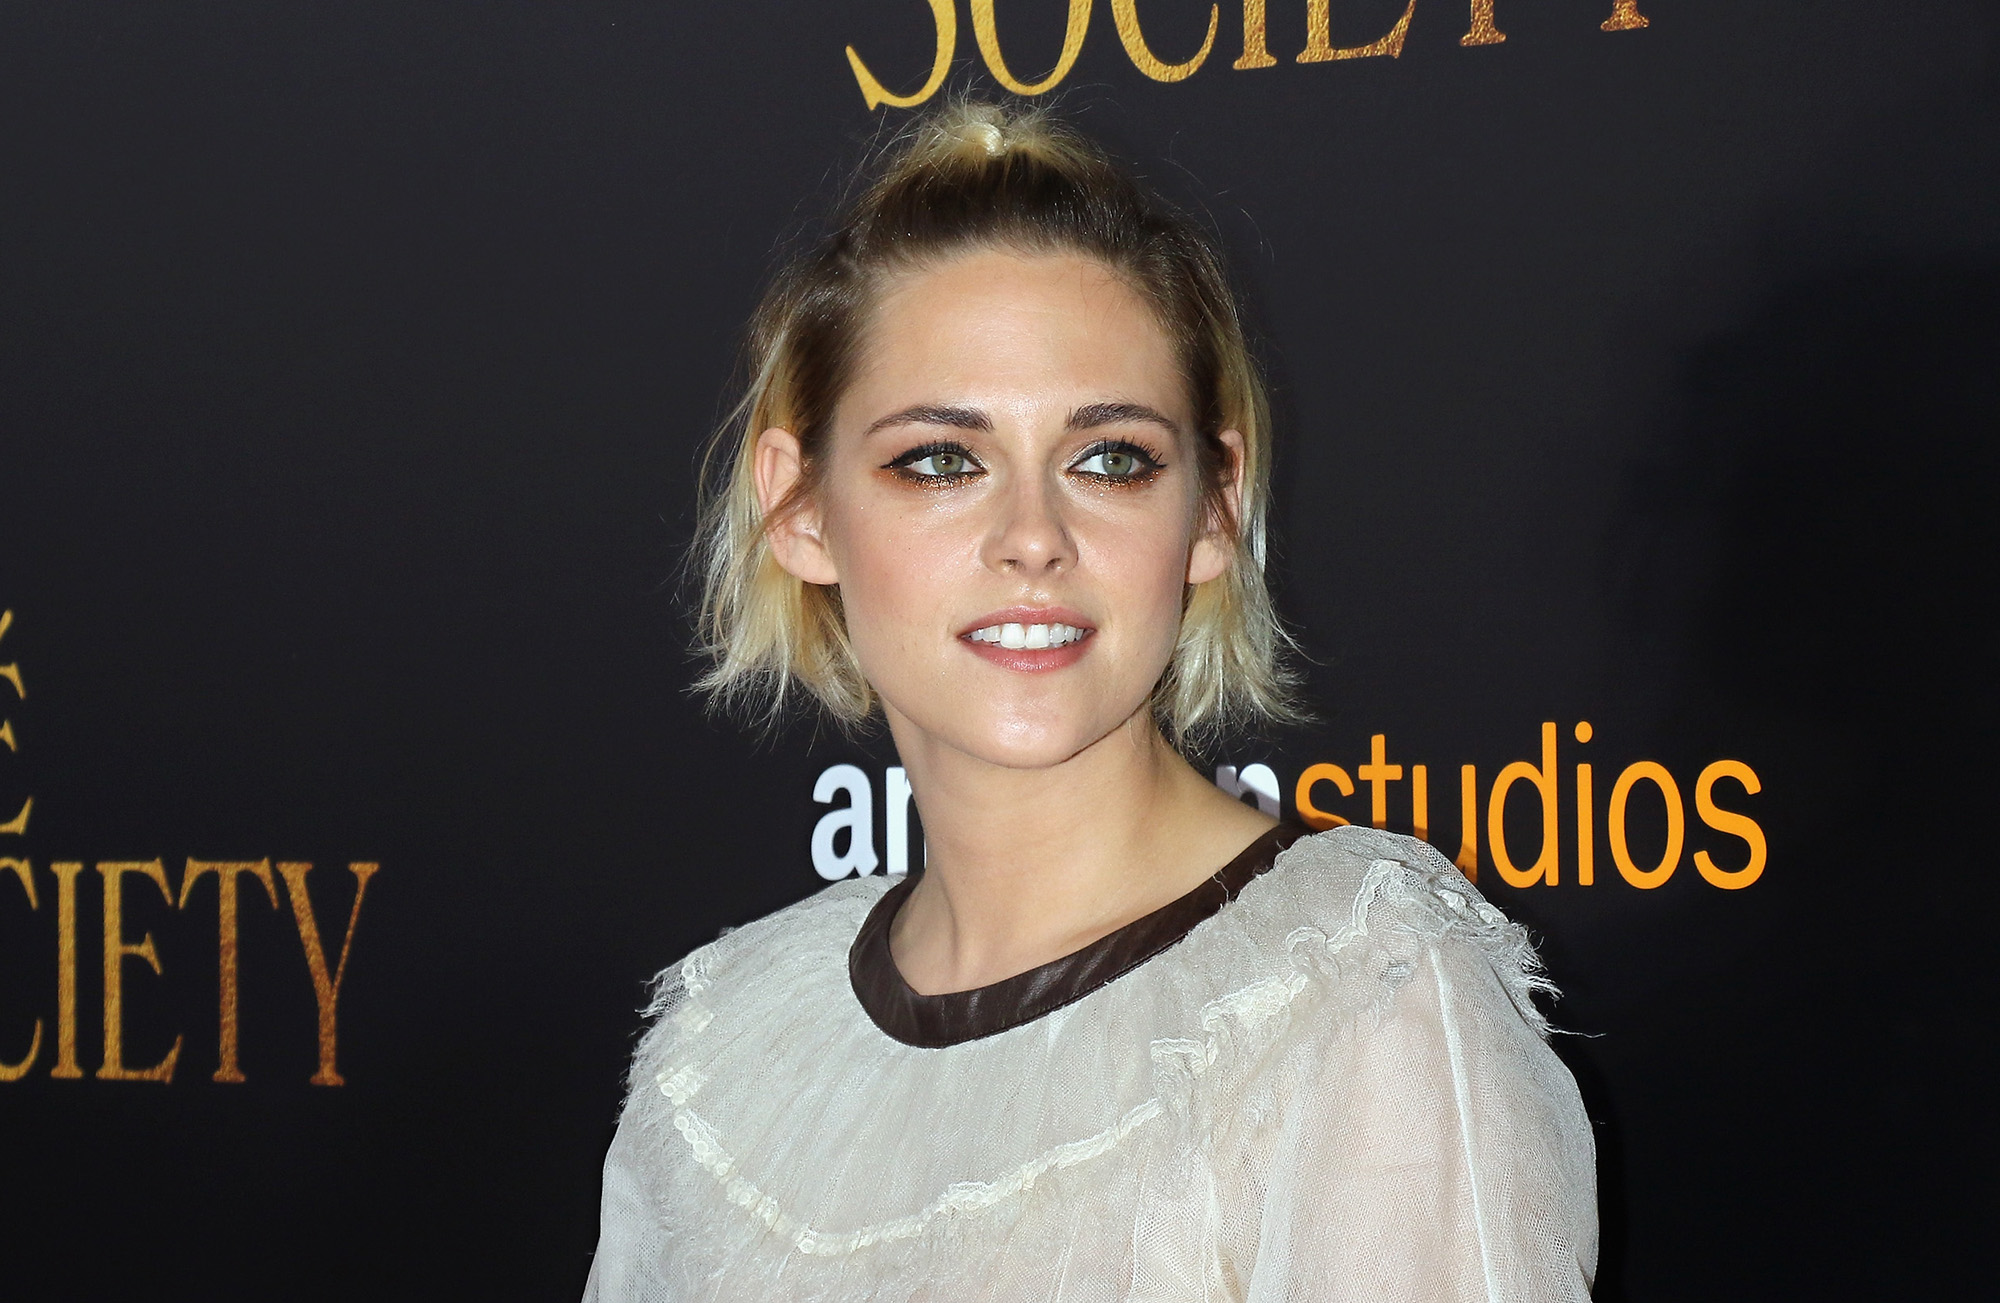 Kristen Stewart attends the New York premiere of  Cafe Society  hosted by Amazon & Lionsgate with The Cinema Society at Paris Theatre on July 13, 2016 in New York City.  (Photo by Jim Spellman/WireImage)